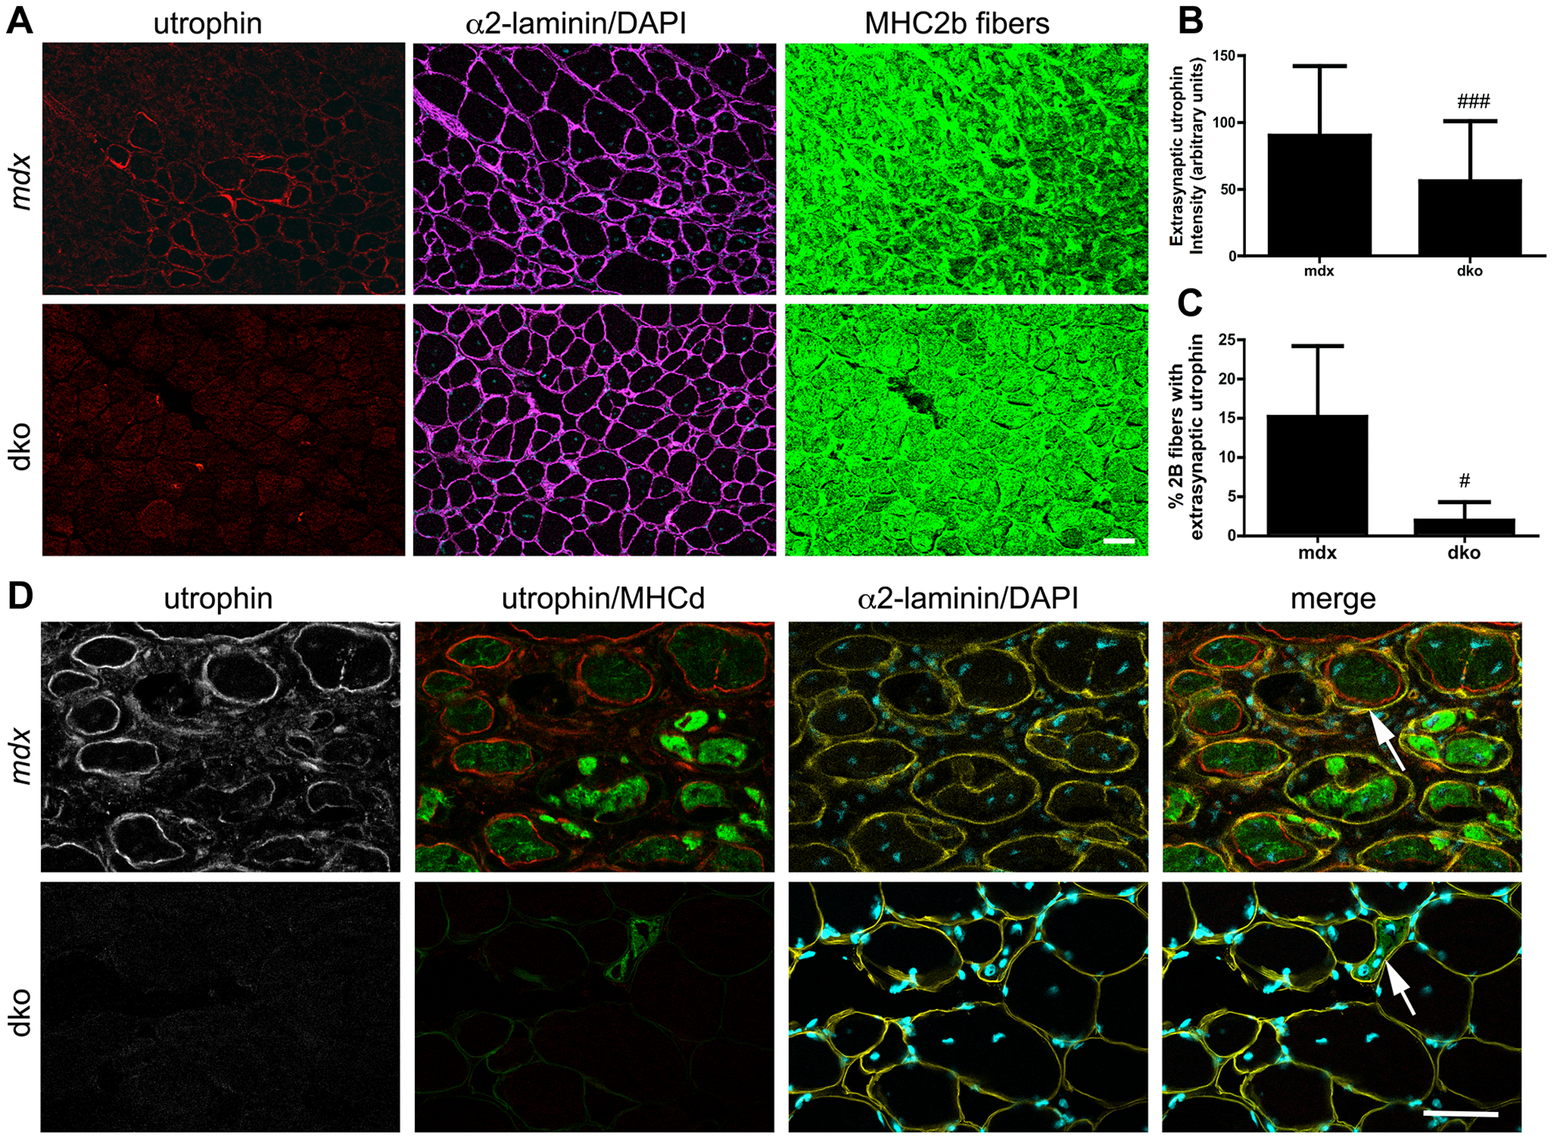 Utrophin expression was reduced on the extrasynaptic sarcolemma of dko fast 2b fibers.